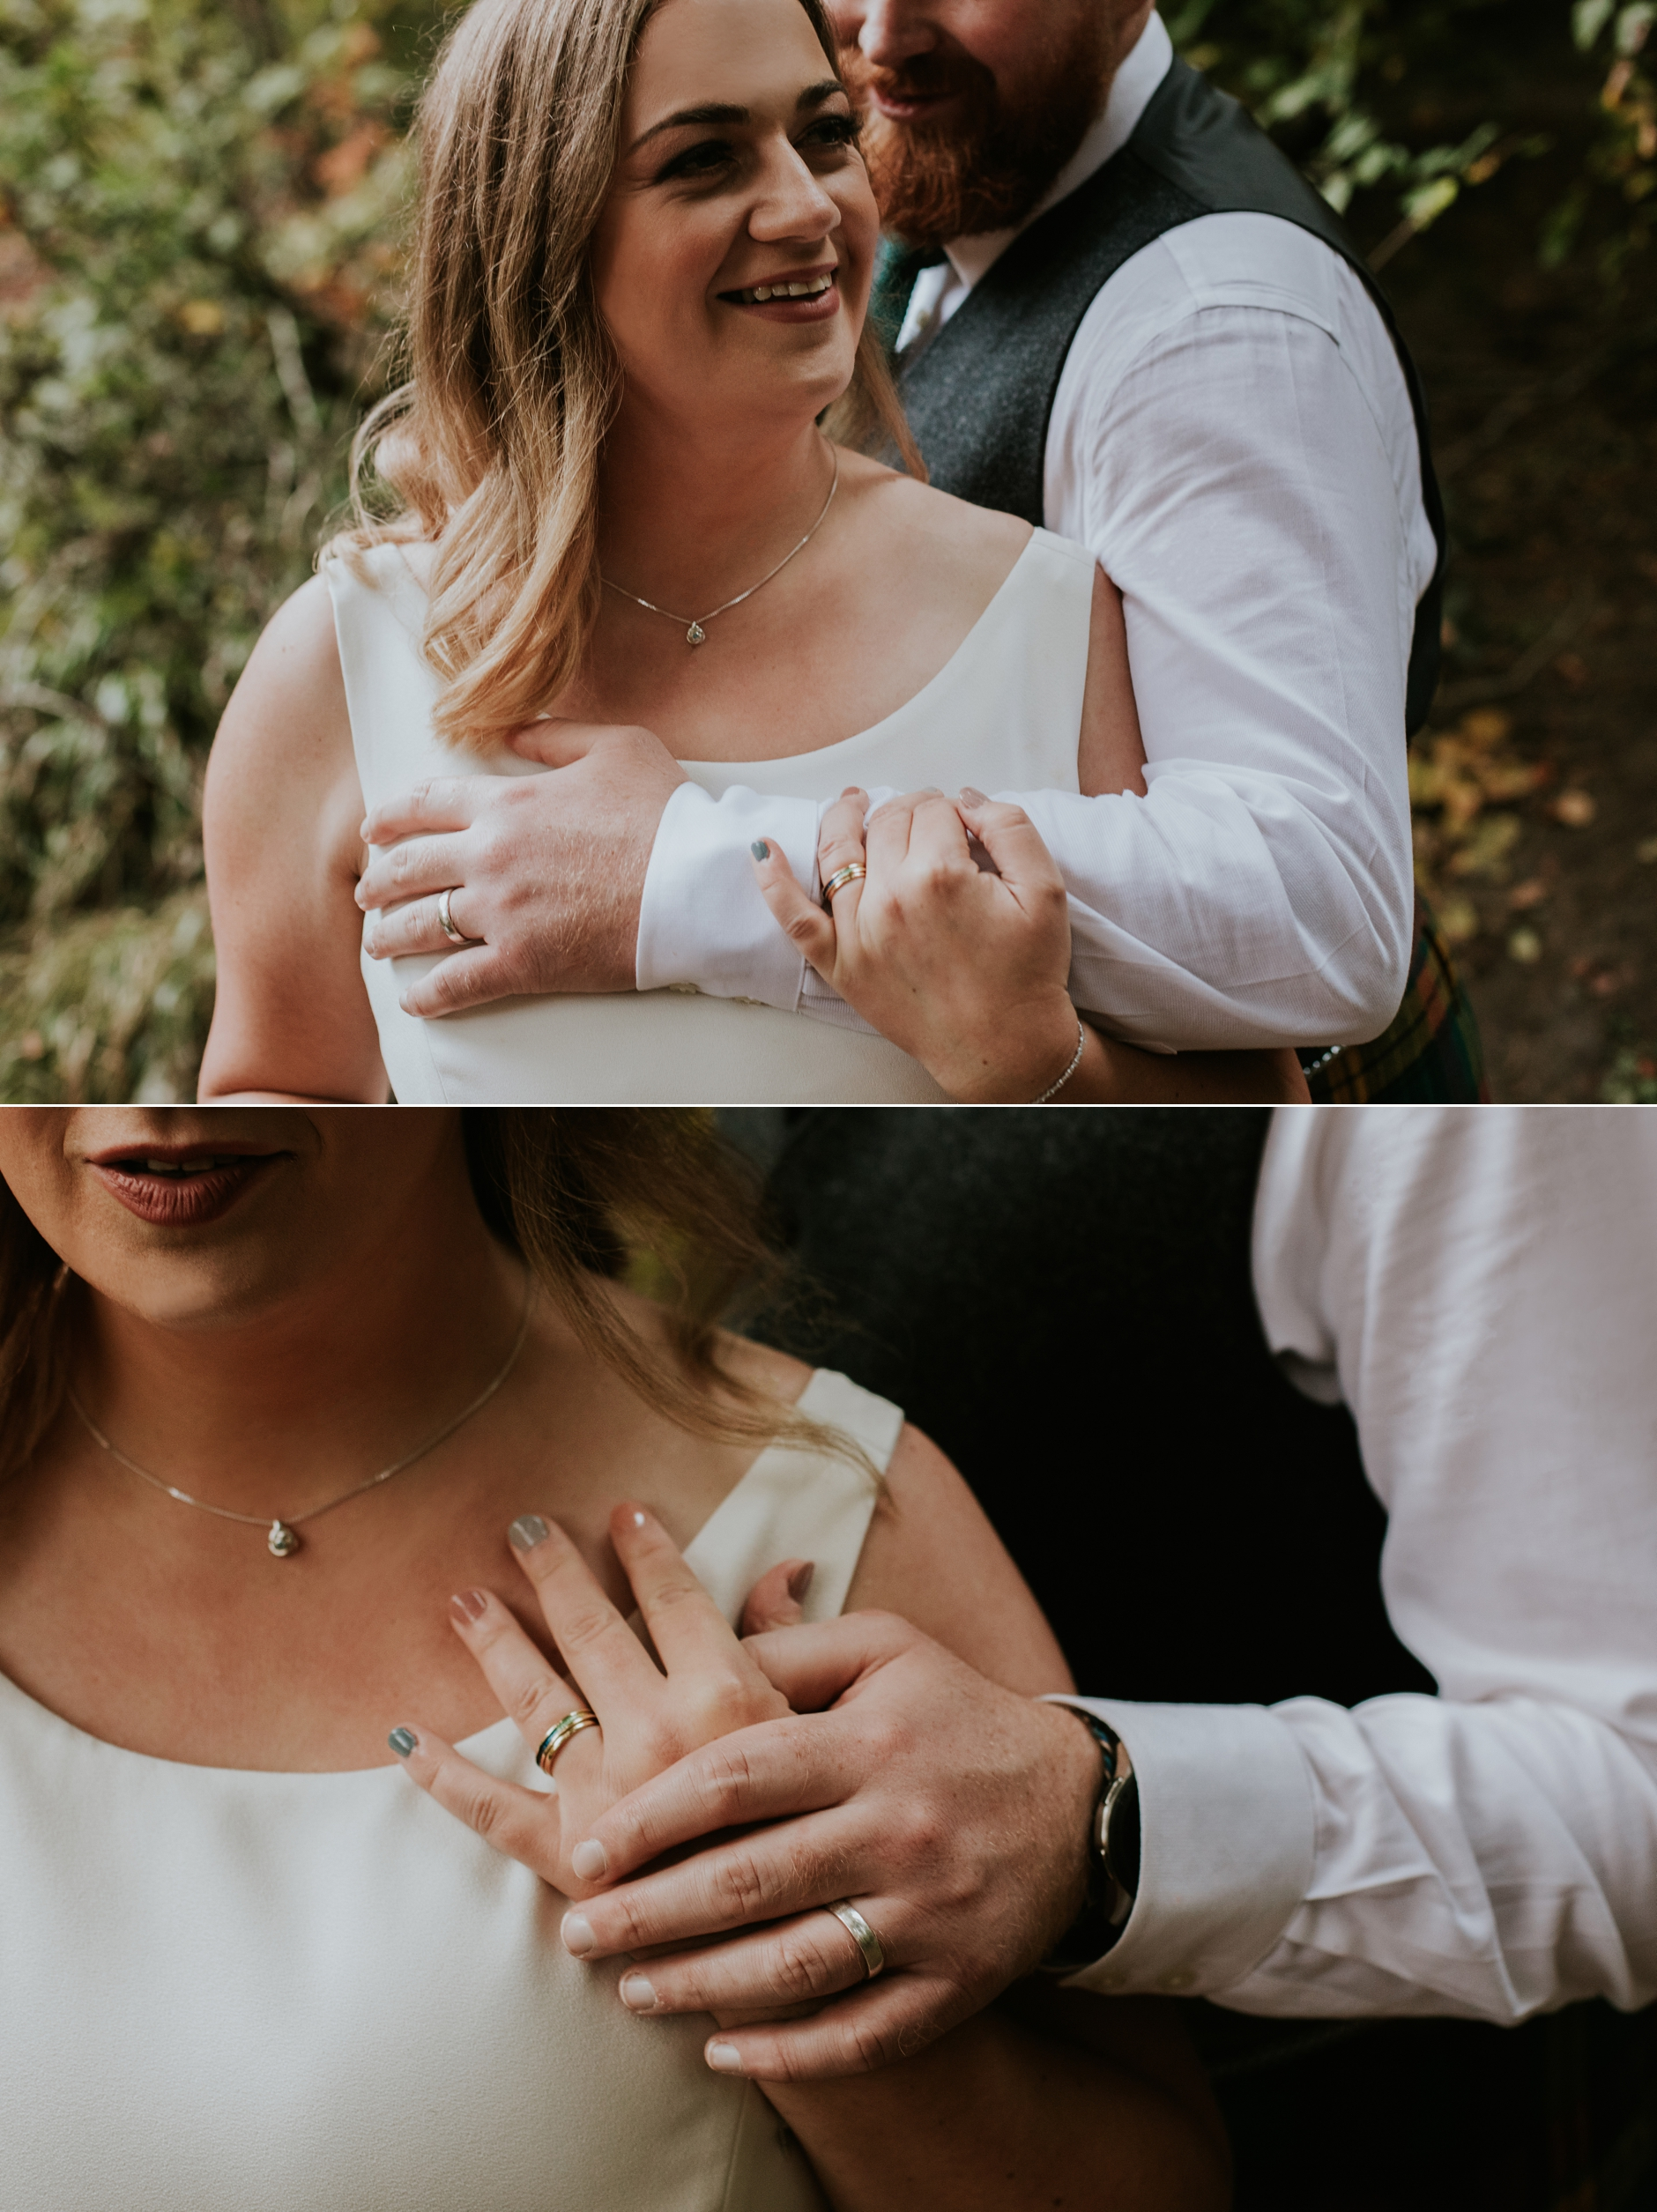 dunkeld elopement photographer